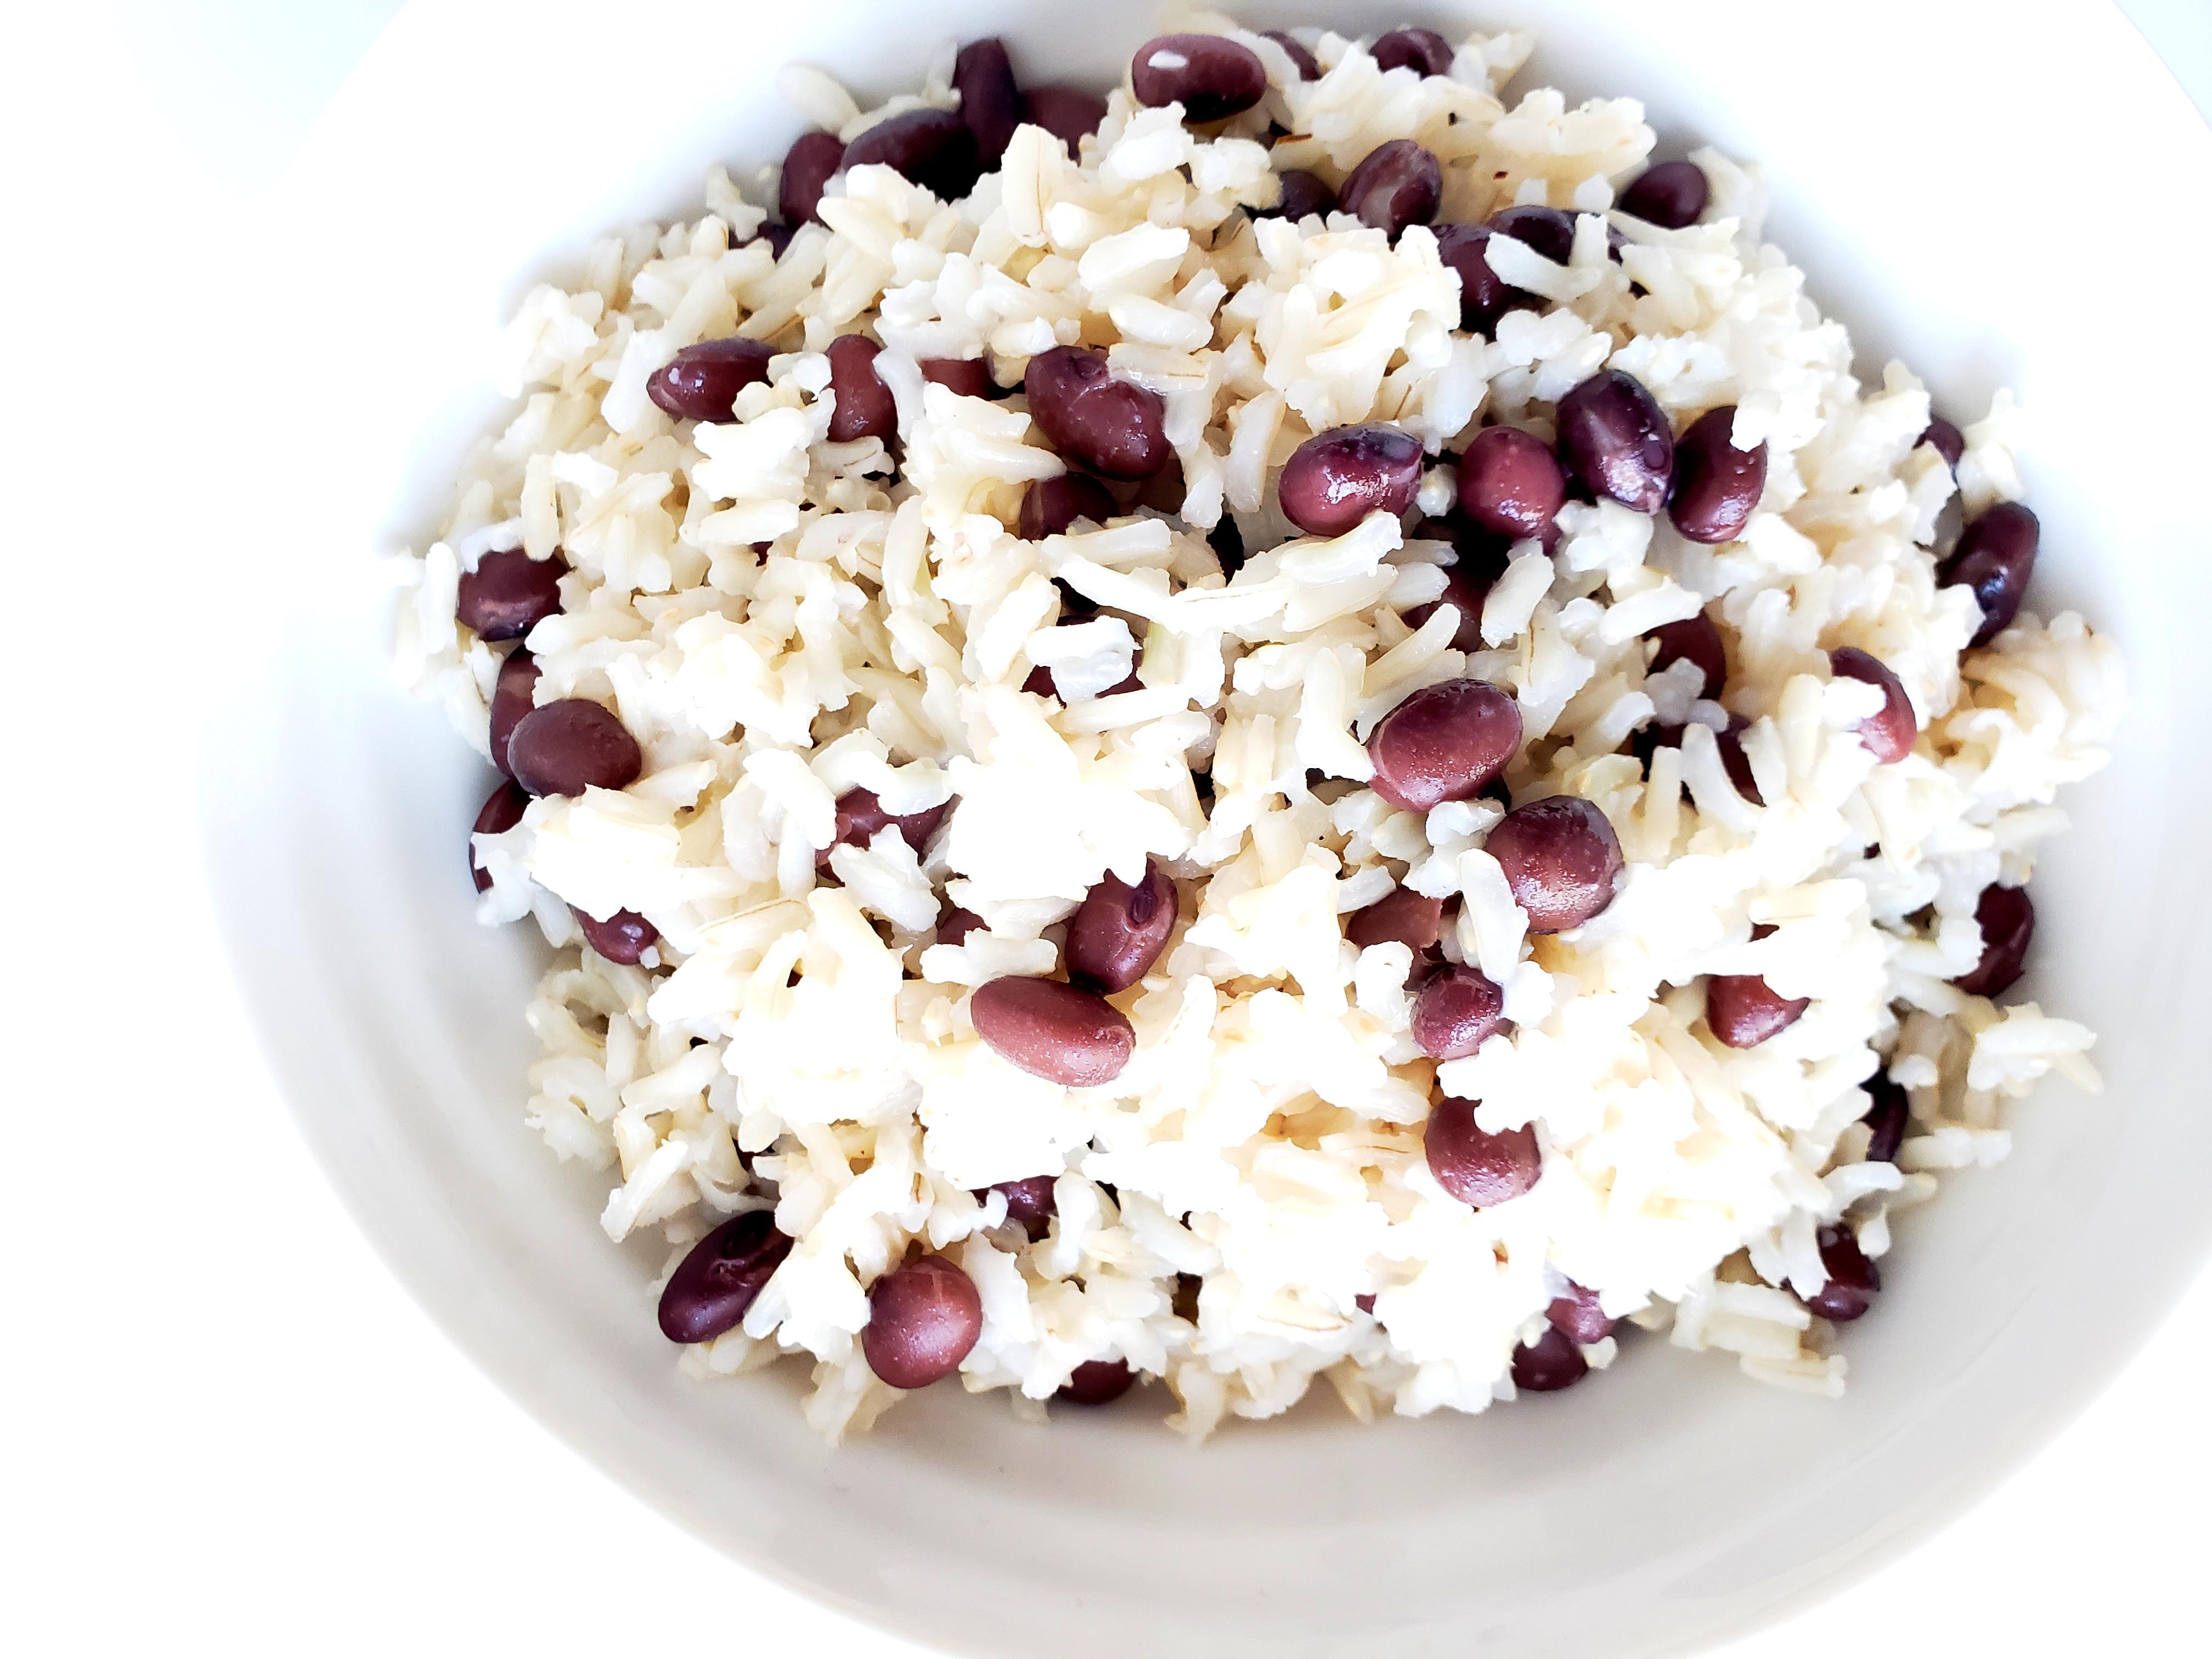 Bowl of Coconut Jasmine Rice with Black Beans